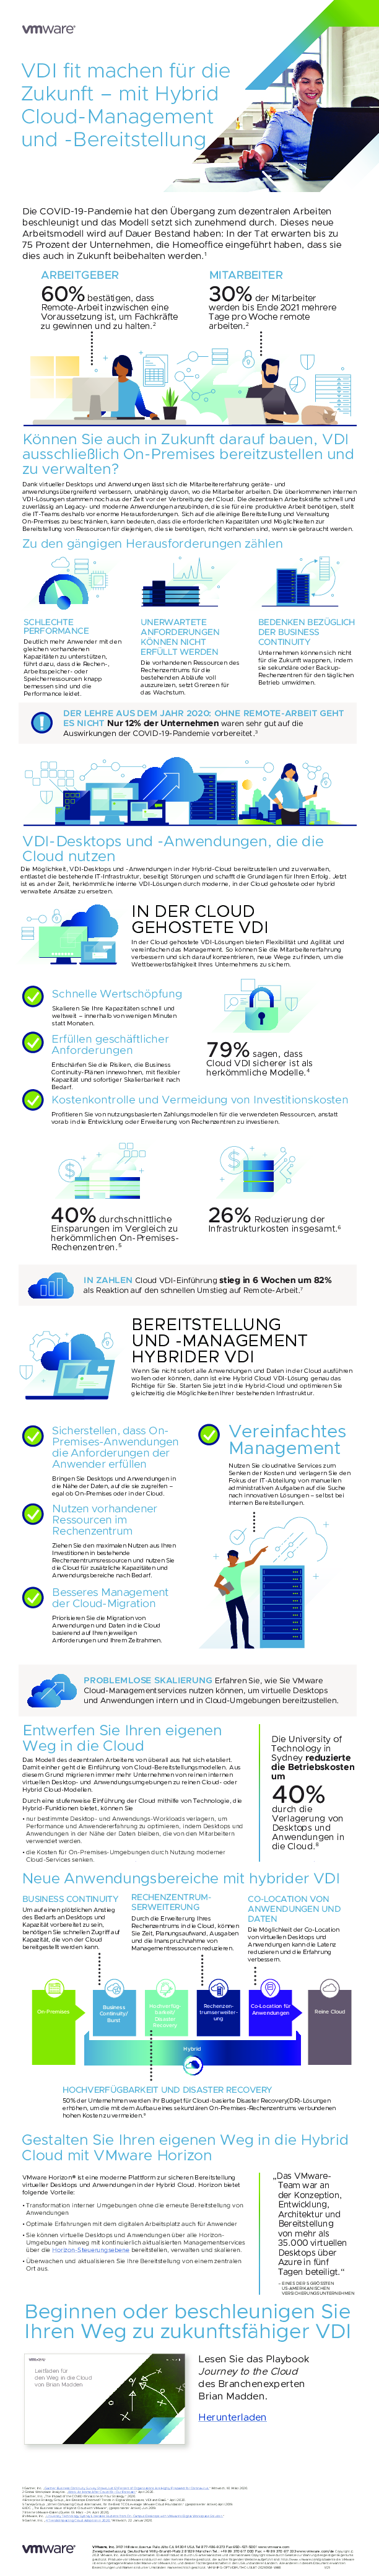 Thumb original optimize vdi for the future with hybrid cloud management and deployment de